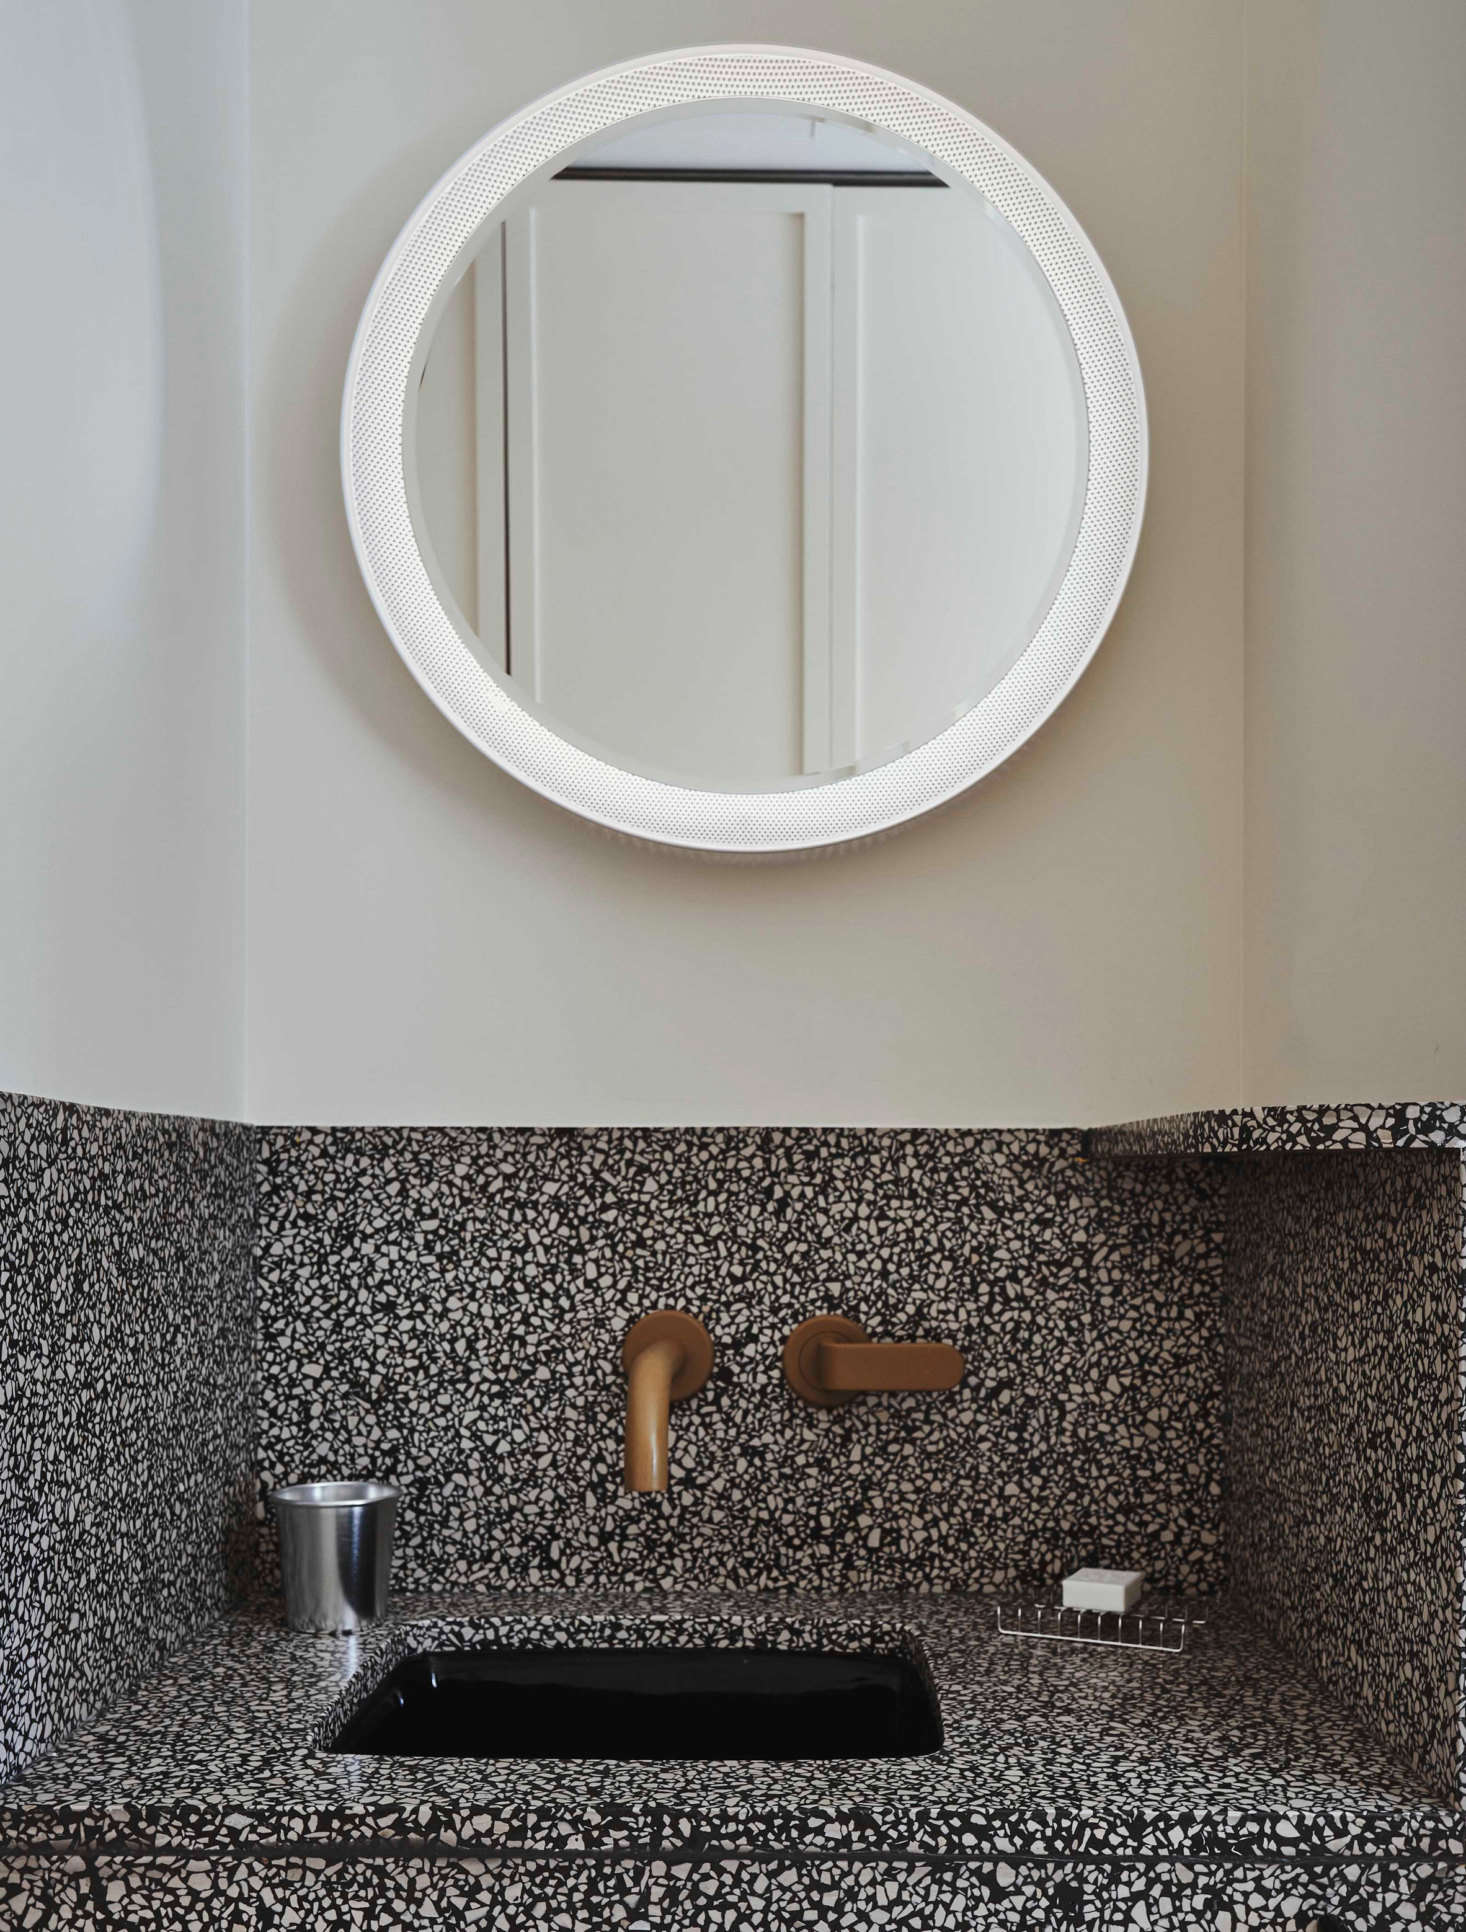 A terrazzo sink is tucked in a corner of the bedroom.